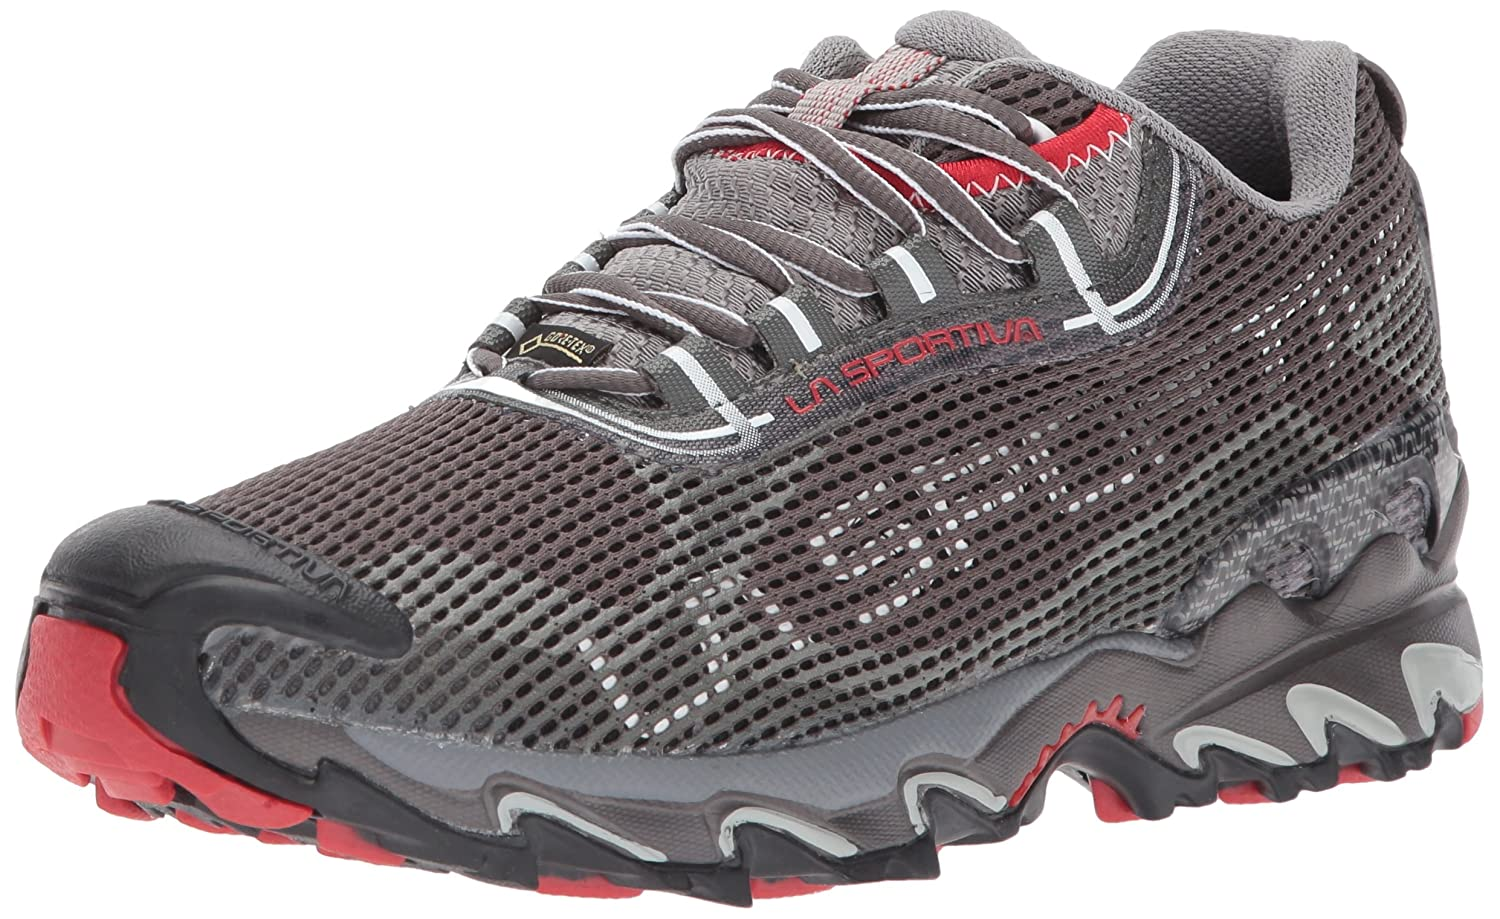 La Sportiva Women's Wildcat 2.0 GTX Trail Running Shoe B0007KOZFO 43 M EU|Grey/Red